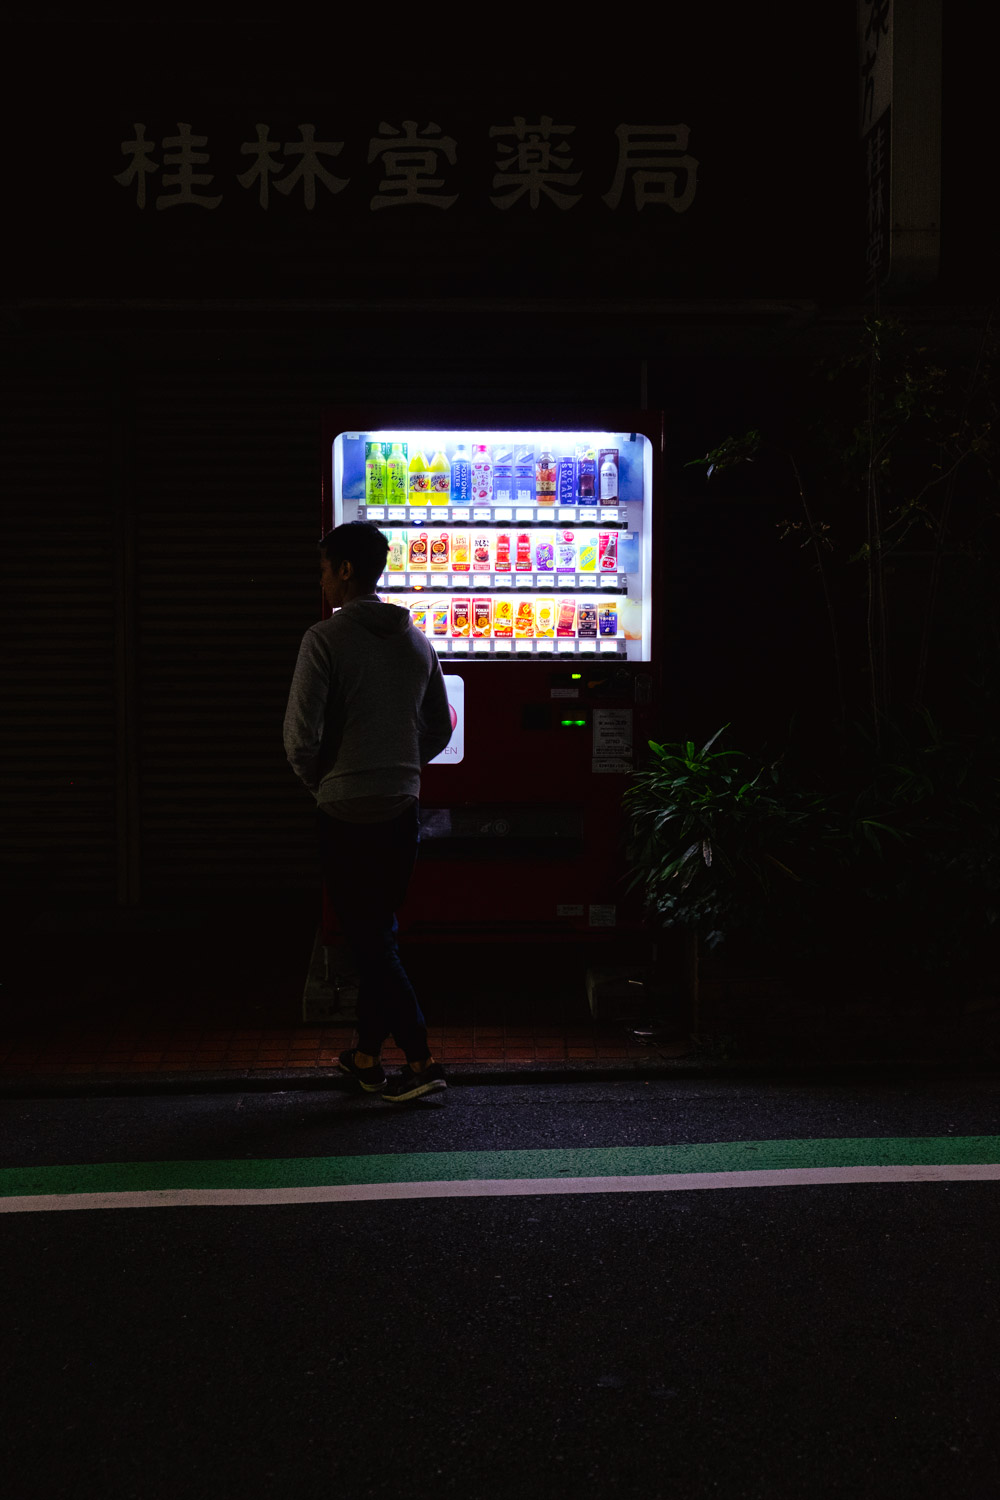 Glowing vending machines